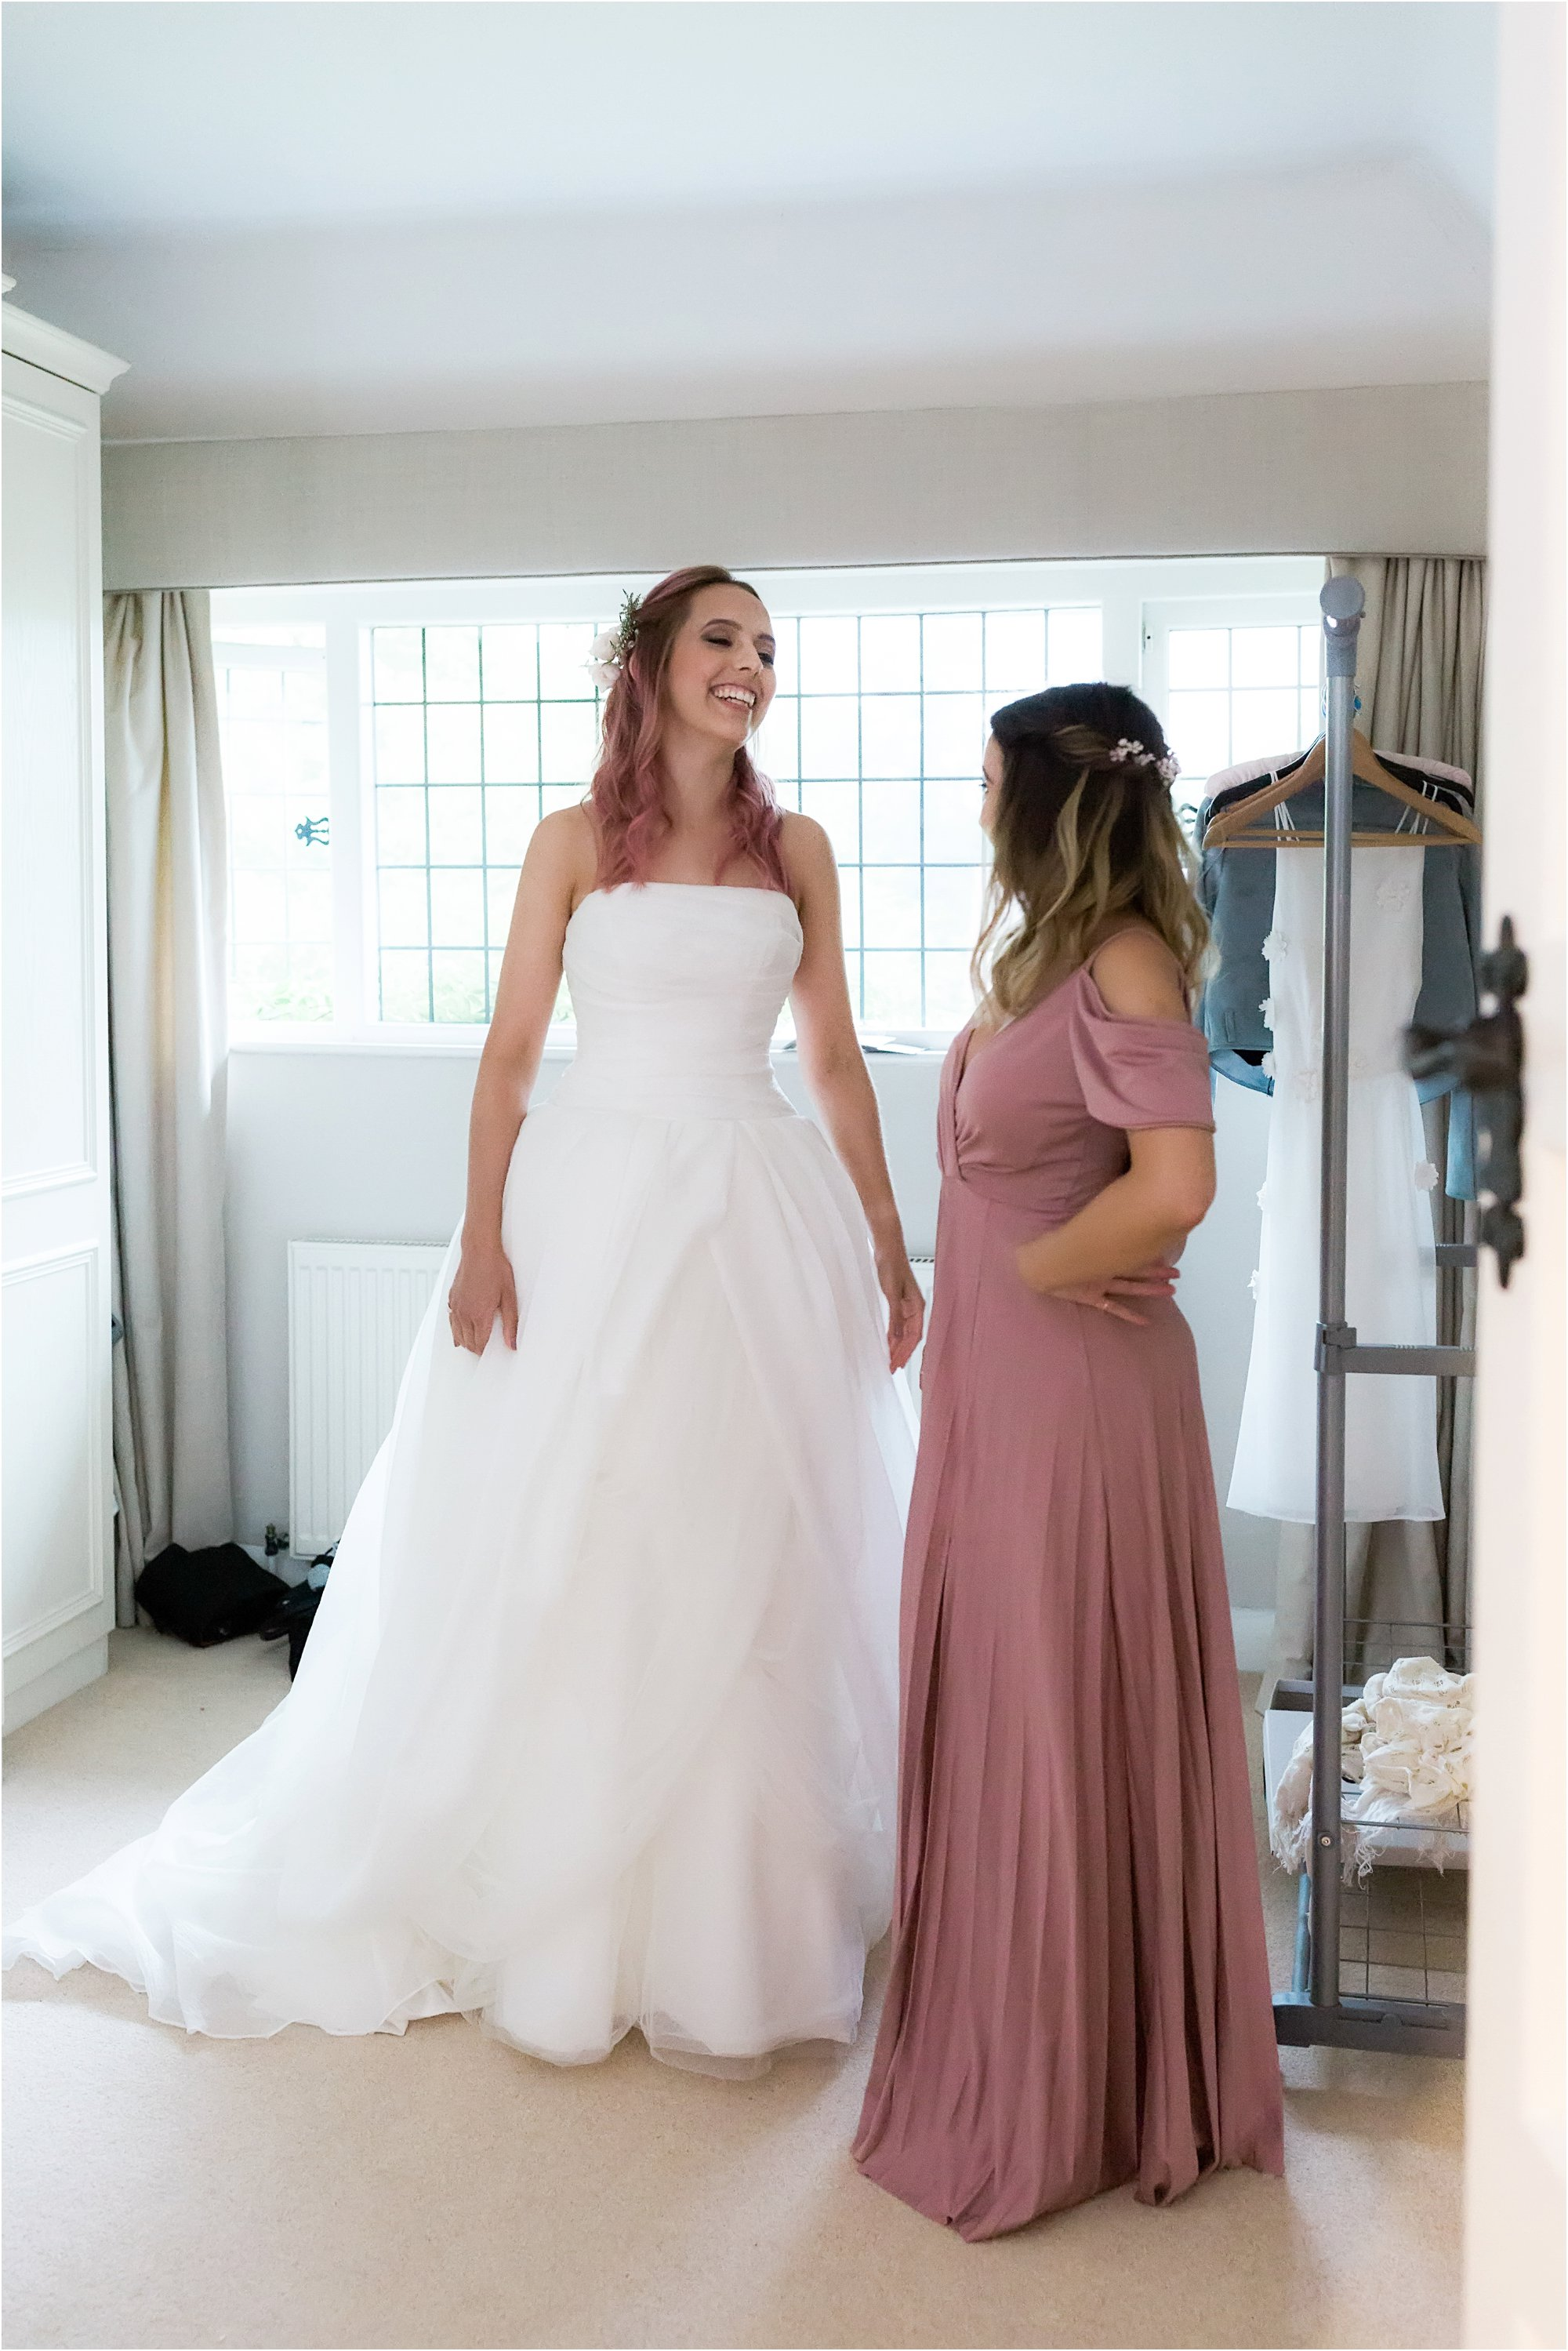 Bridal party getting ready in Surrey